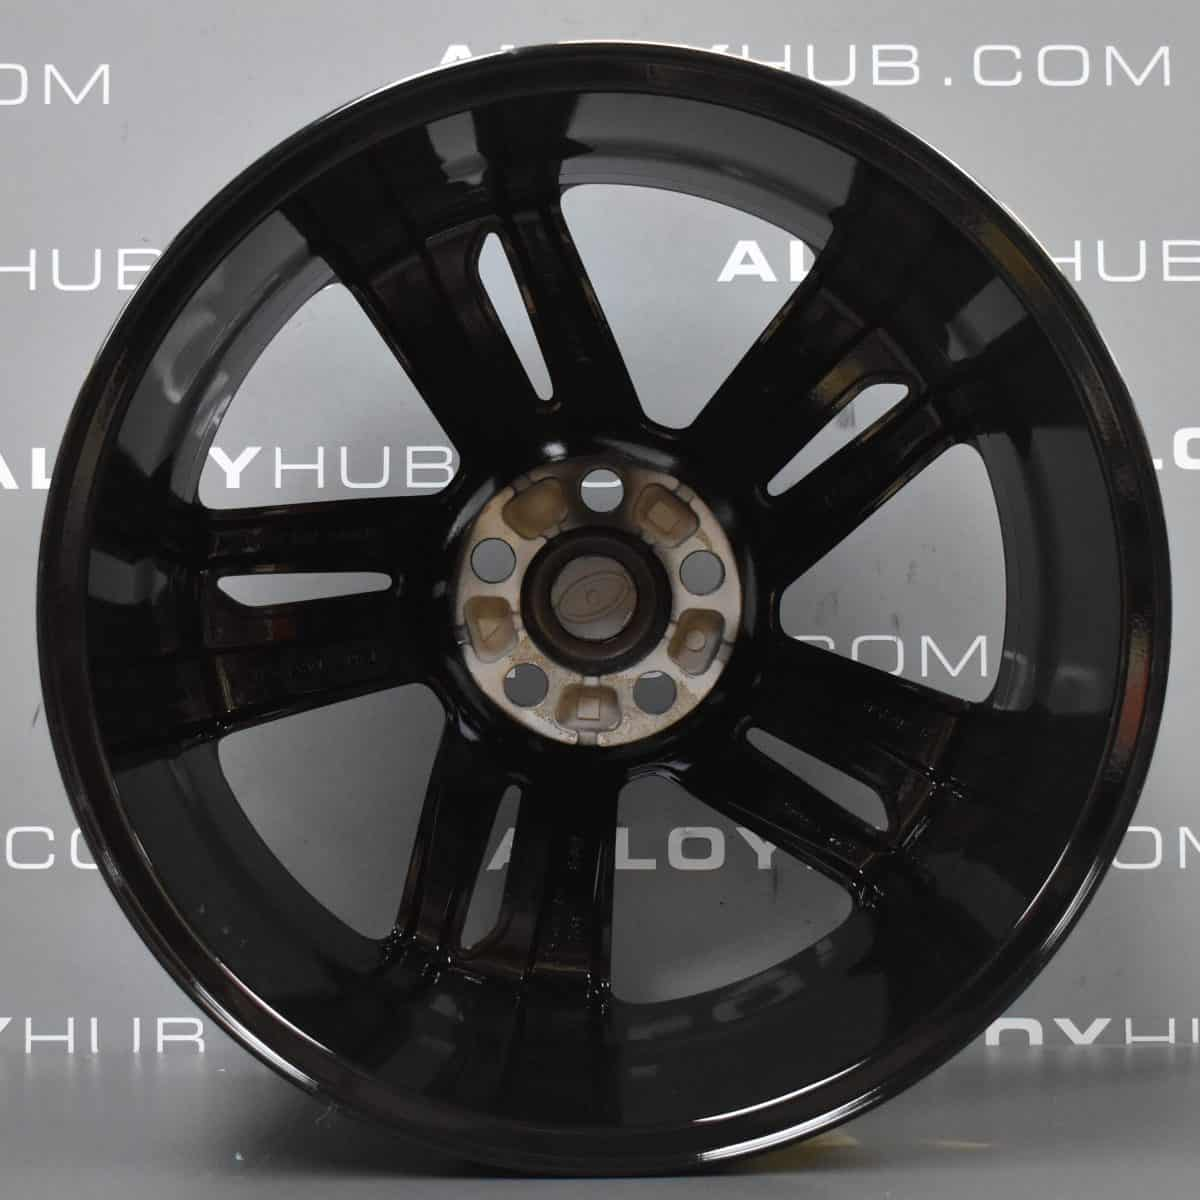 """Genuine Land Rover Range Rover Sport L320 Red Edition 5 Split Spoke 20"""" Inch Alloy Wheels with Gloss Black Finish DH3M-1007-CAW"""